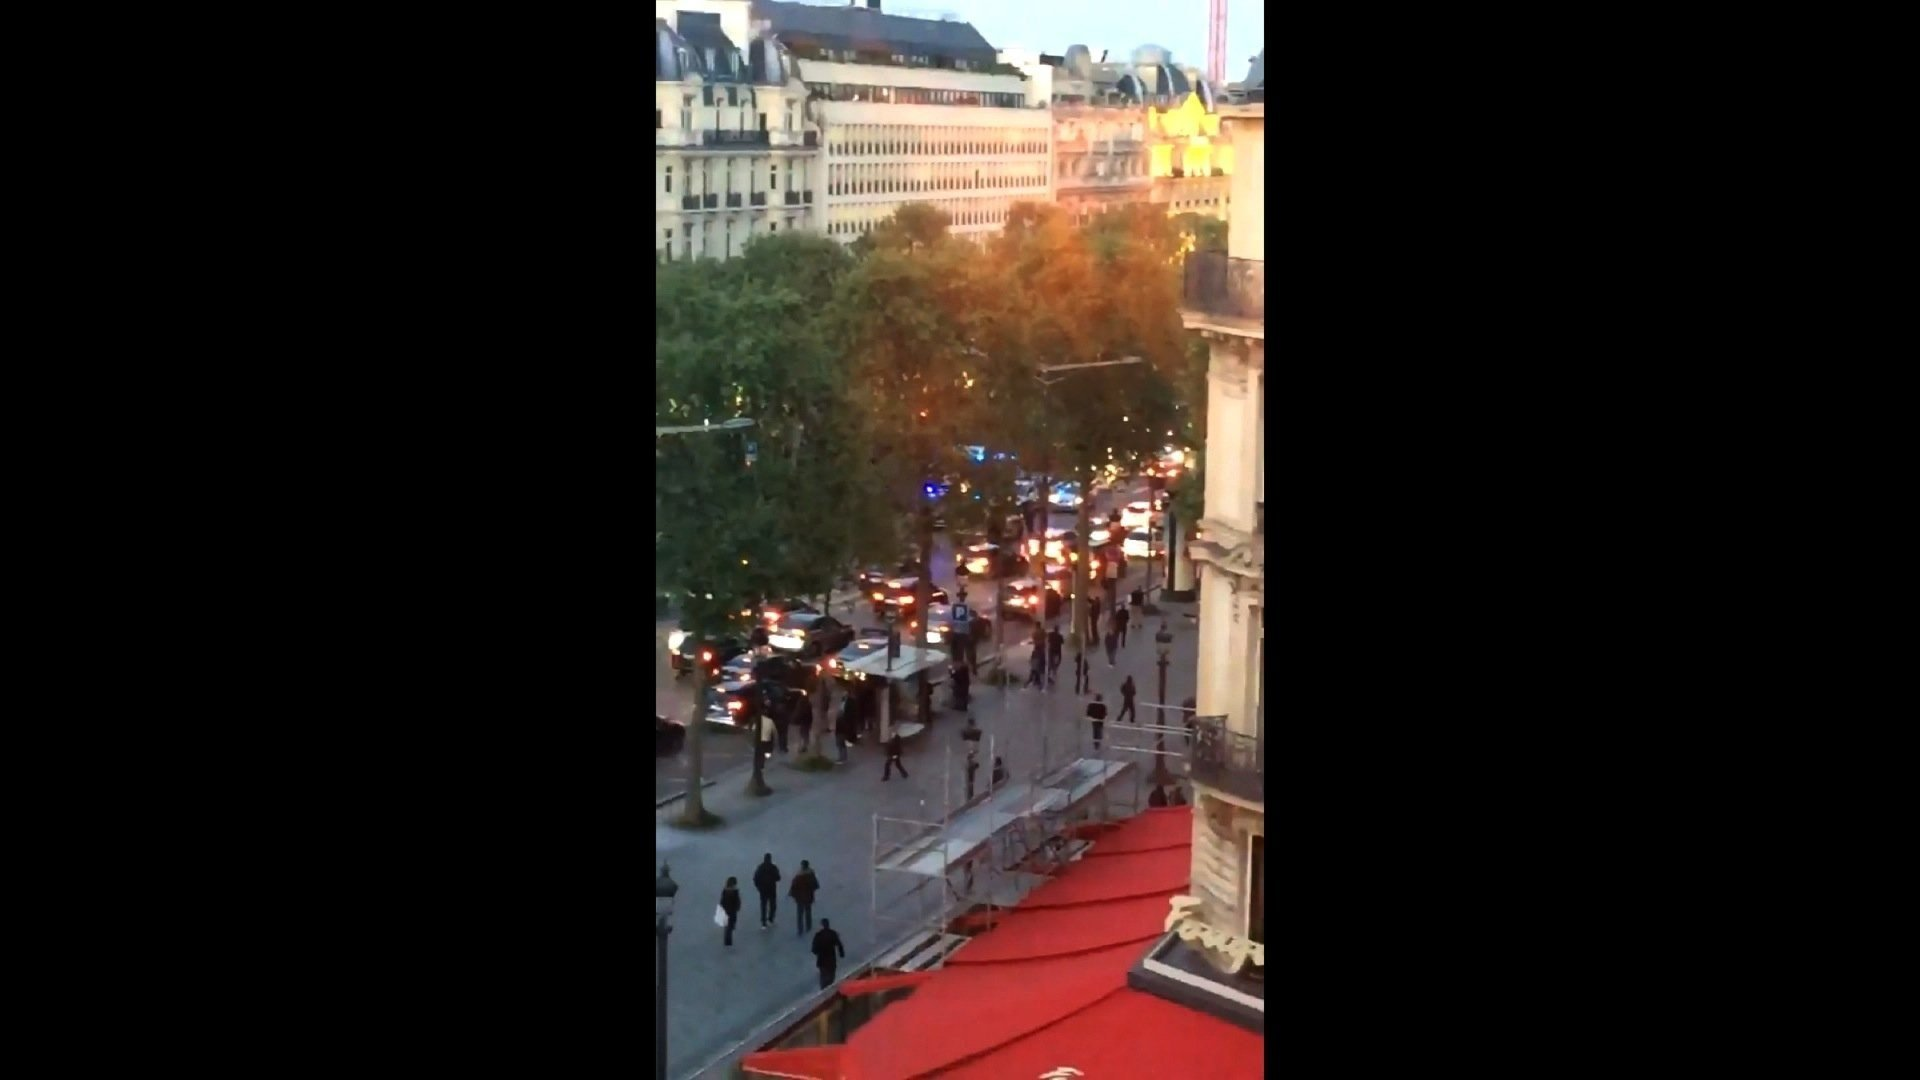 The scene of a shooting incident in the Champs-Elysées area in Paris, France.